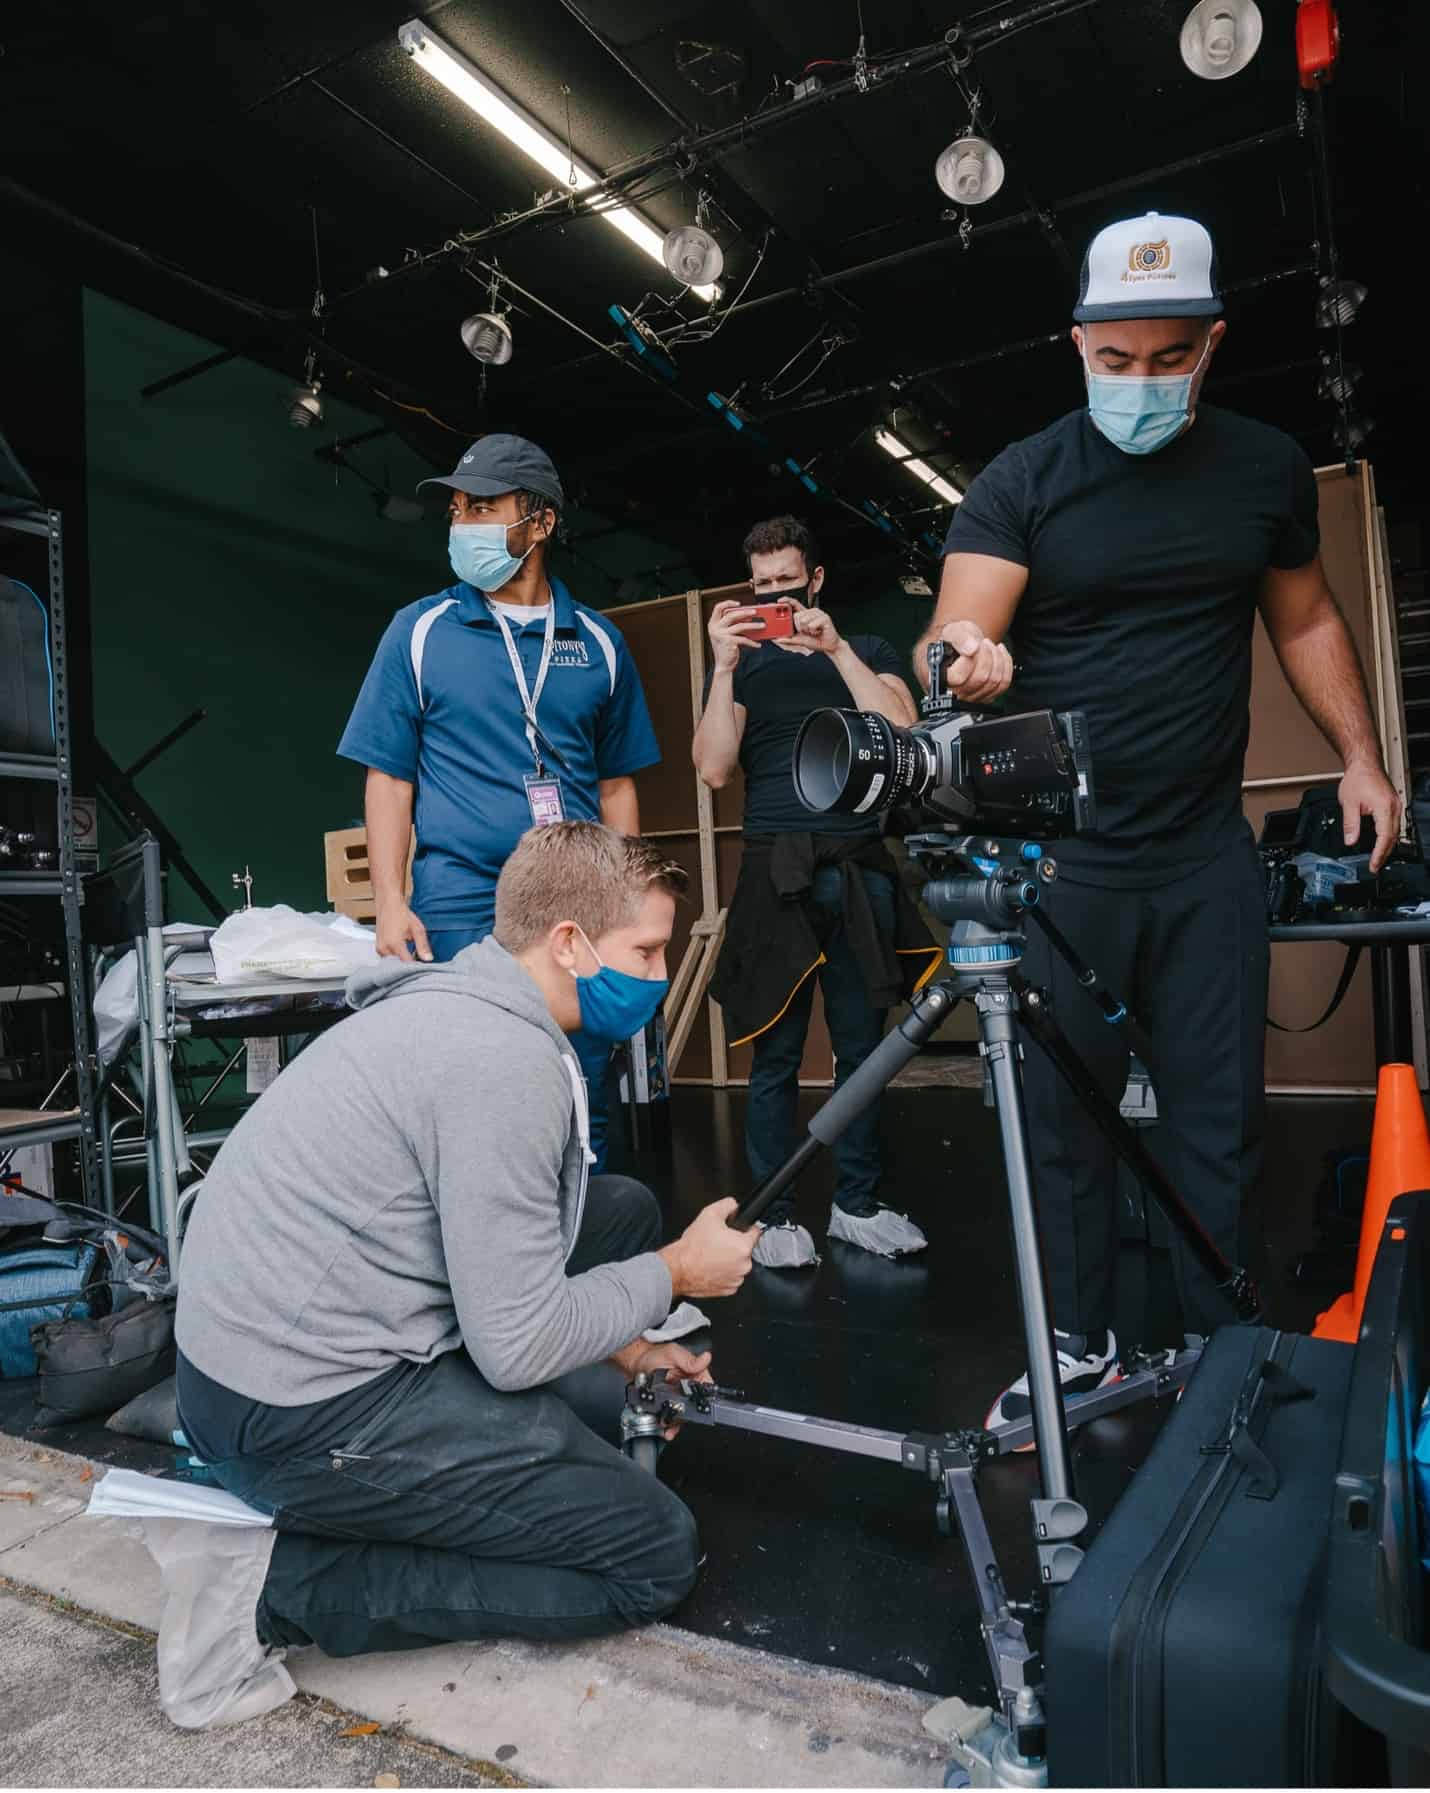 Consider renting or borrowing equipment from a friend if it's your first time directing.